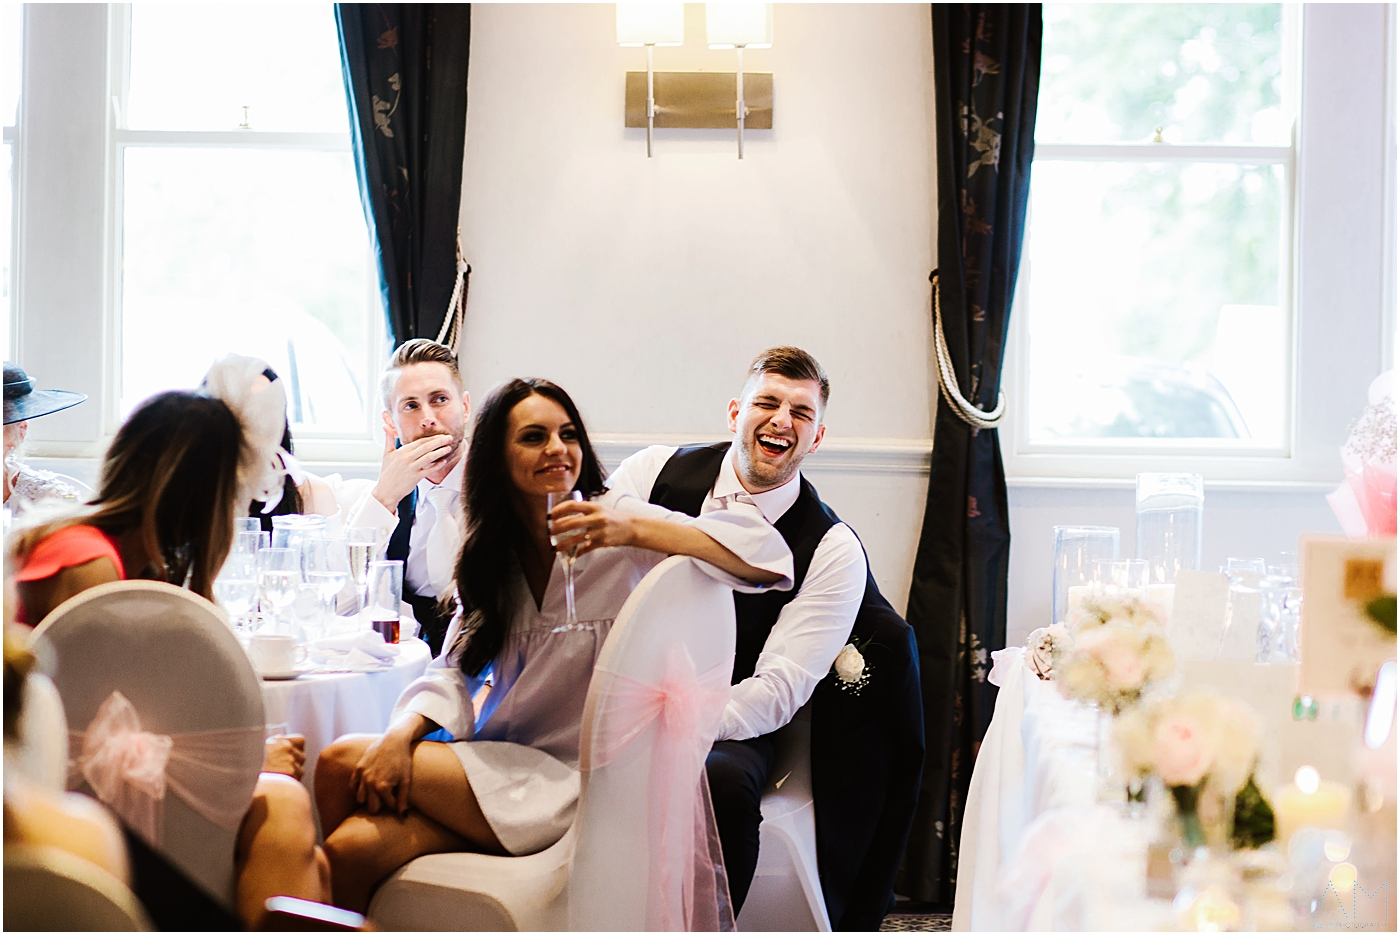 Wedding guest laughing at the grooms speech